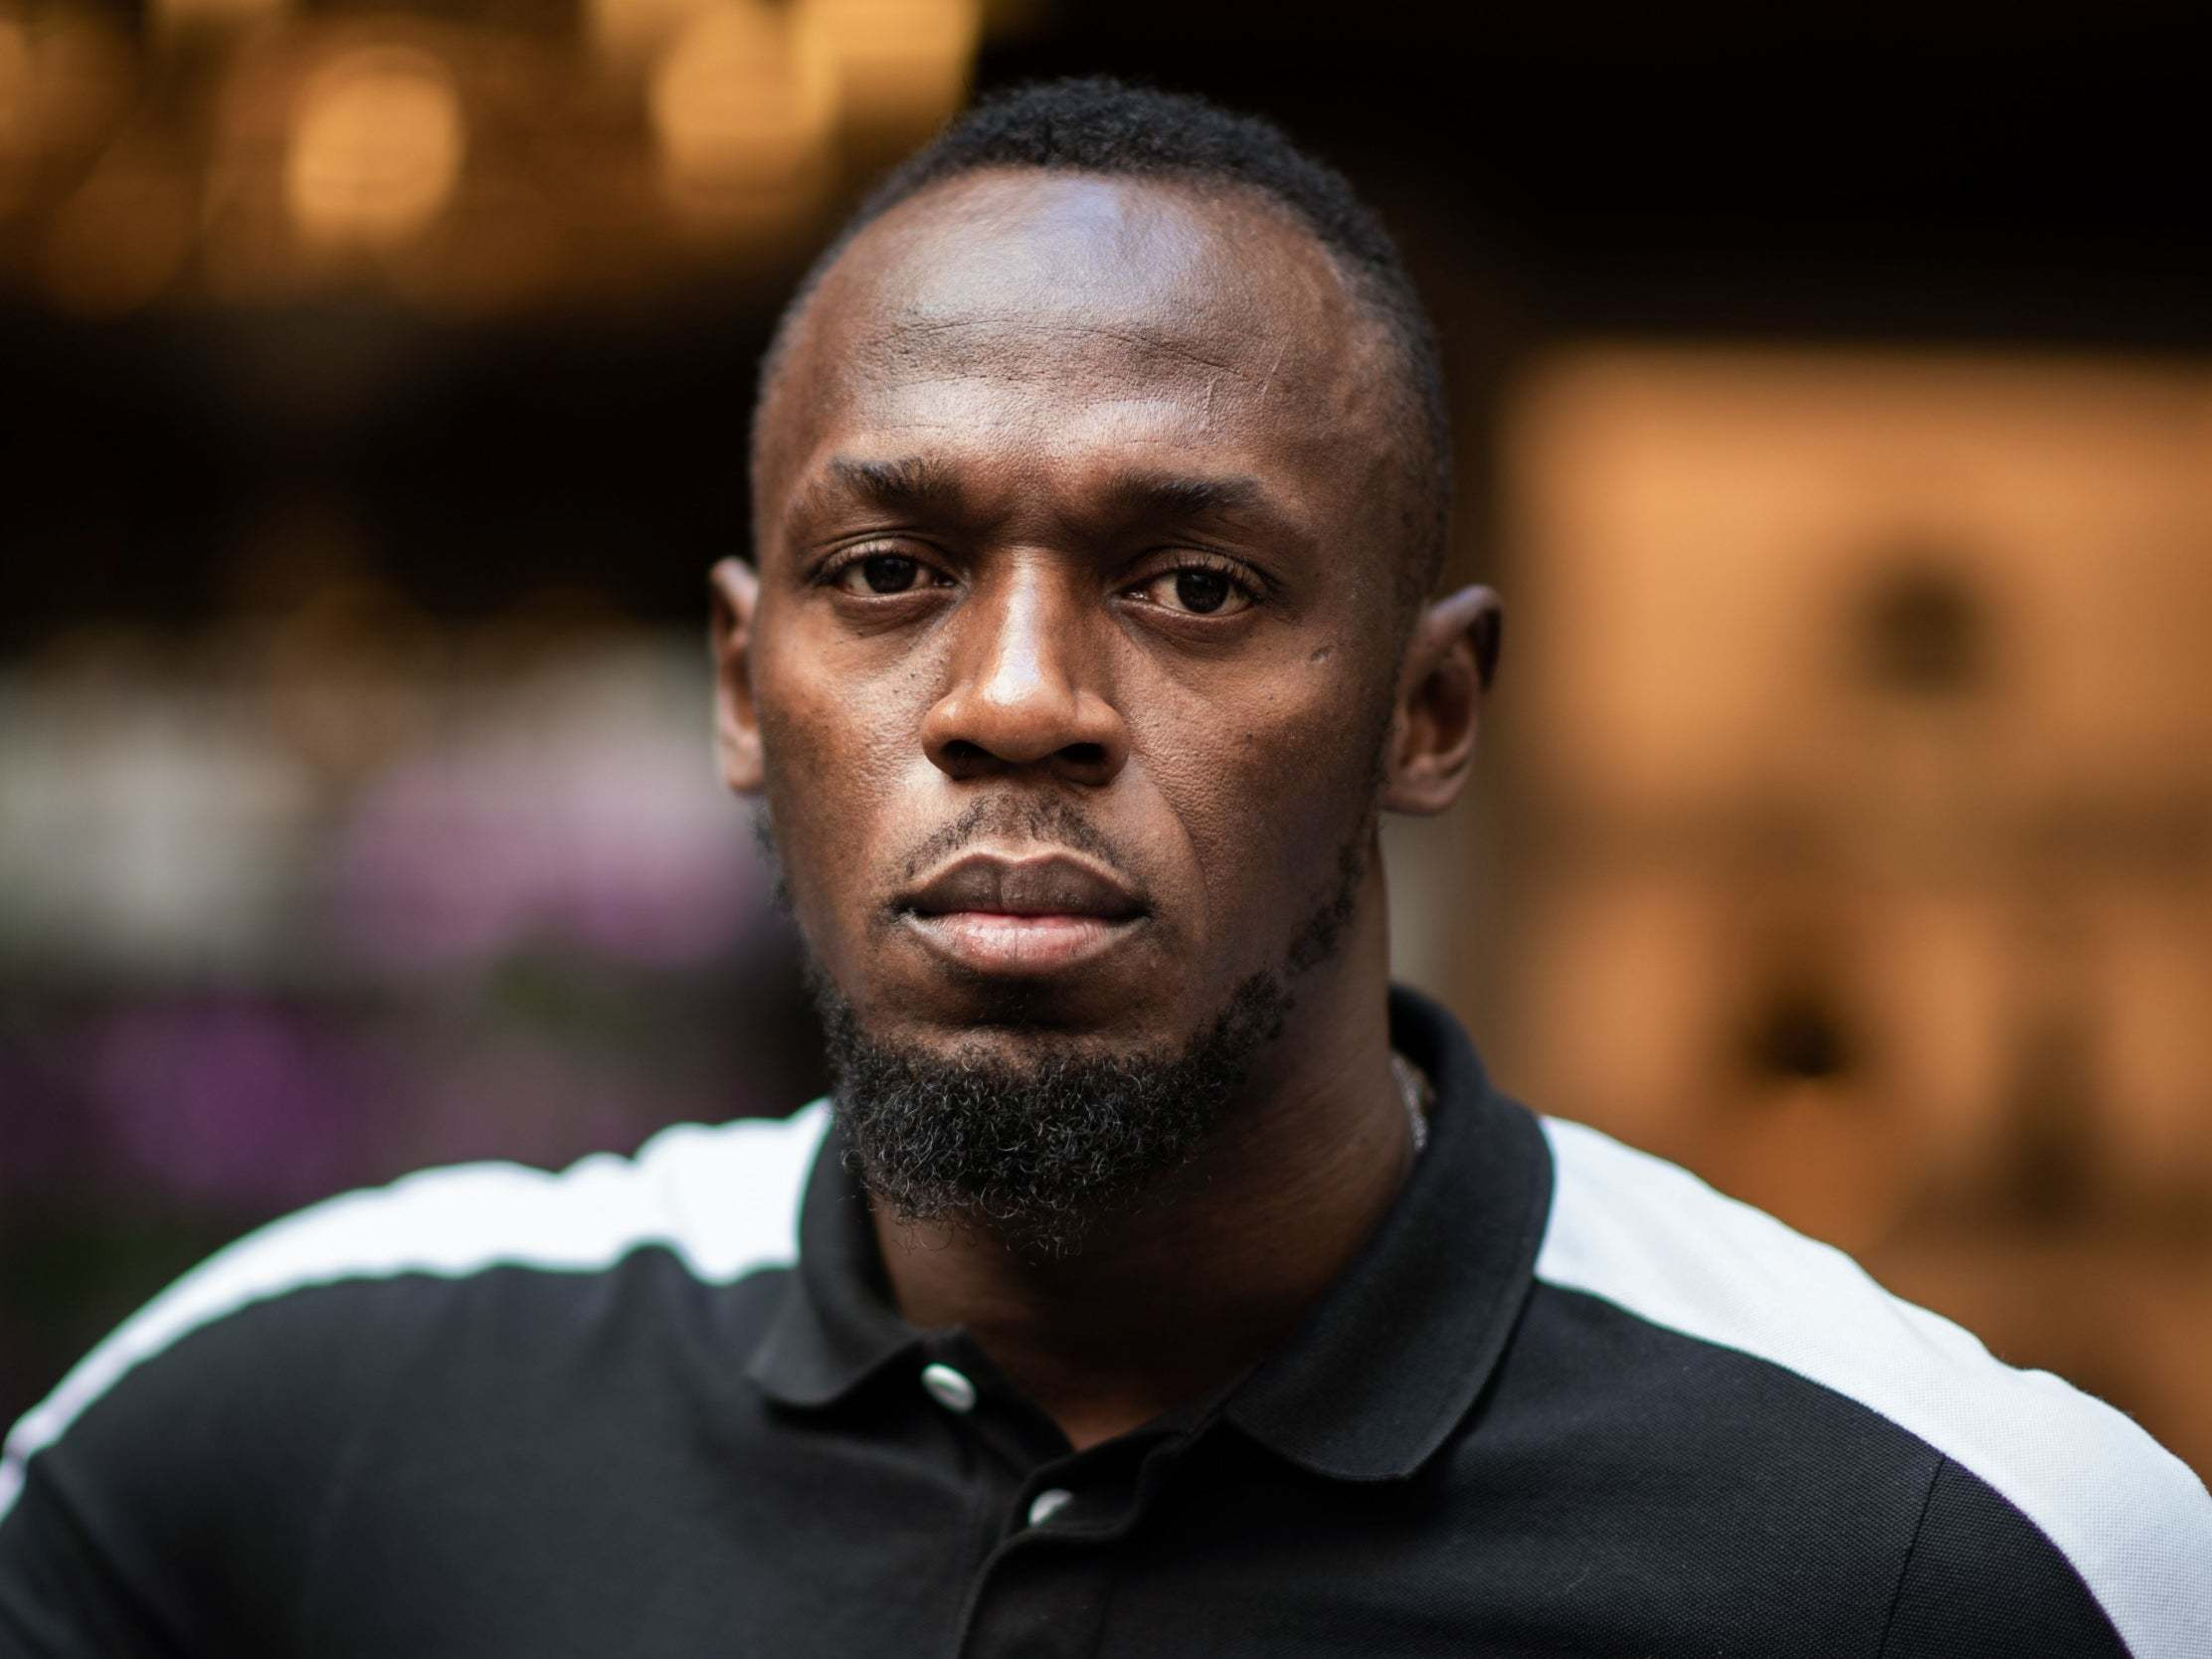 Usain Bolt claims next generation of Jamaican sprinters are 'spoiled' and have lost motivation